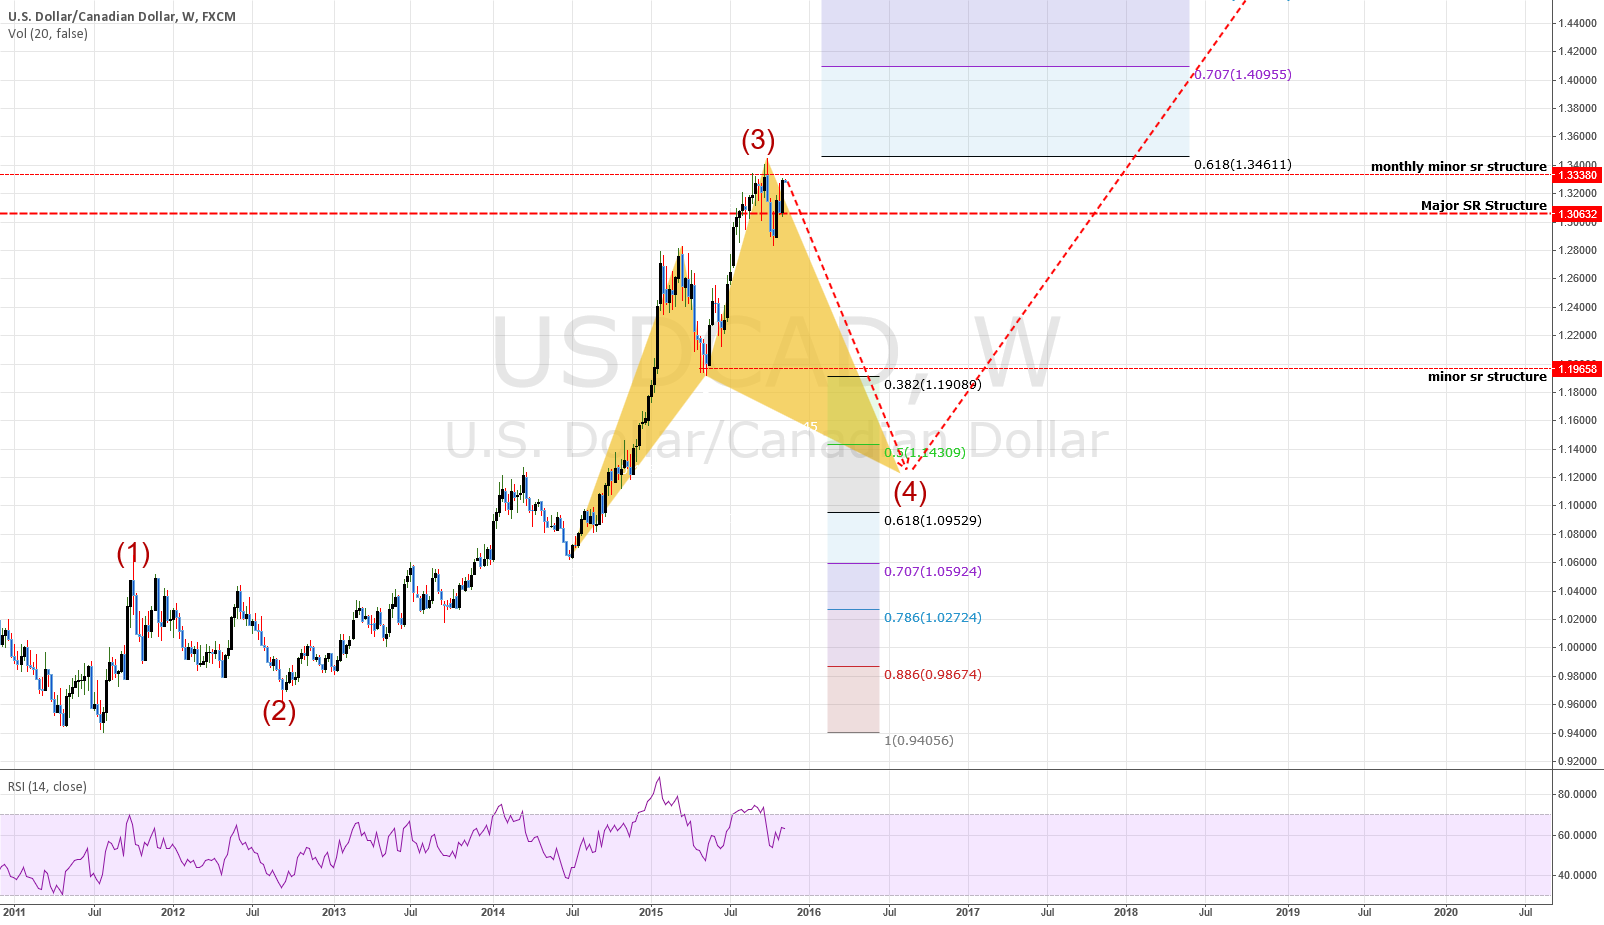 USDCAD: Weekly Chart - Showing large move down